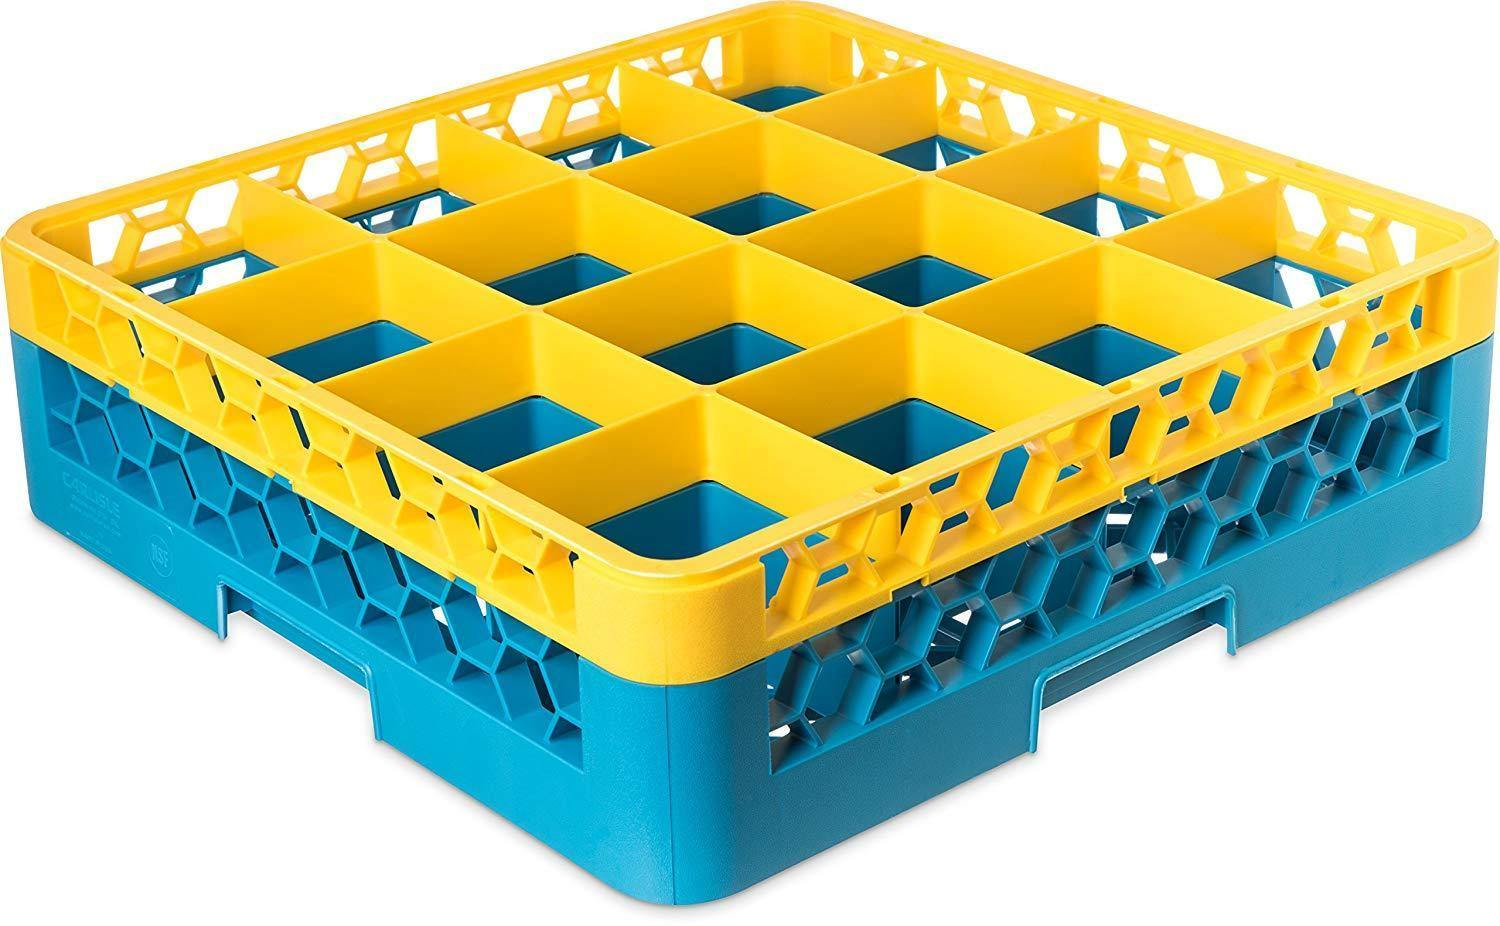 Carlisle RG16-1C411 Opticlean 16 Compartments Yellow Color-Coded Glass Rack with 1 Extender